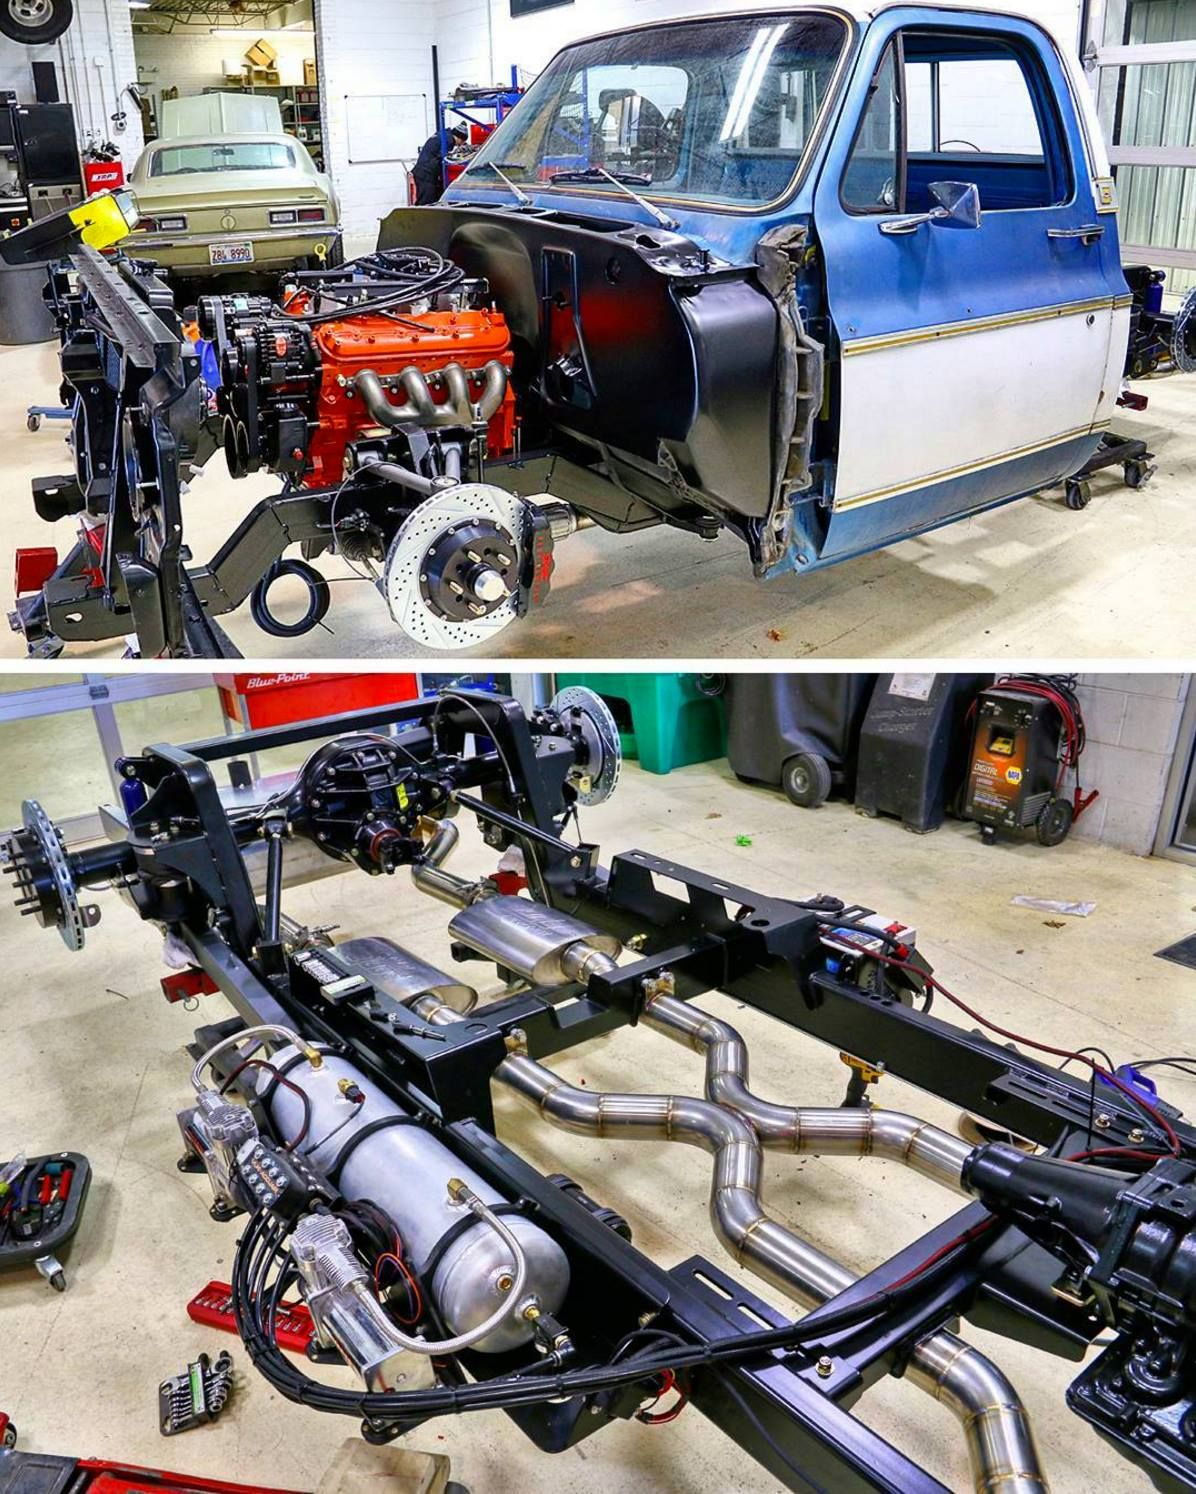 46 Best Images About Truck Suspension On Pinterest: C-notched C-10 With A Nice Rear End Setup, Air Compressor